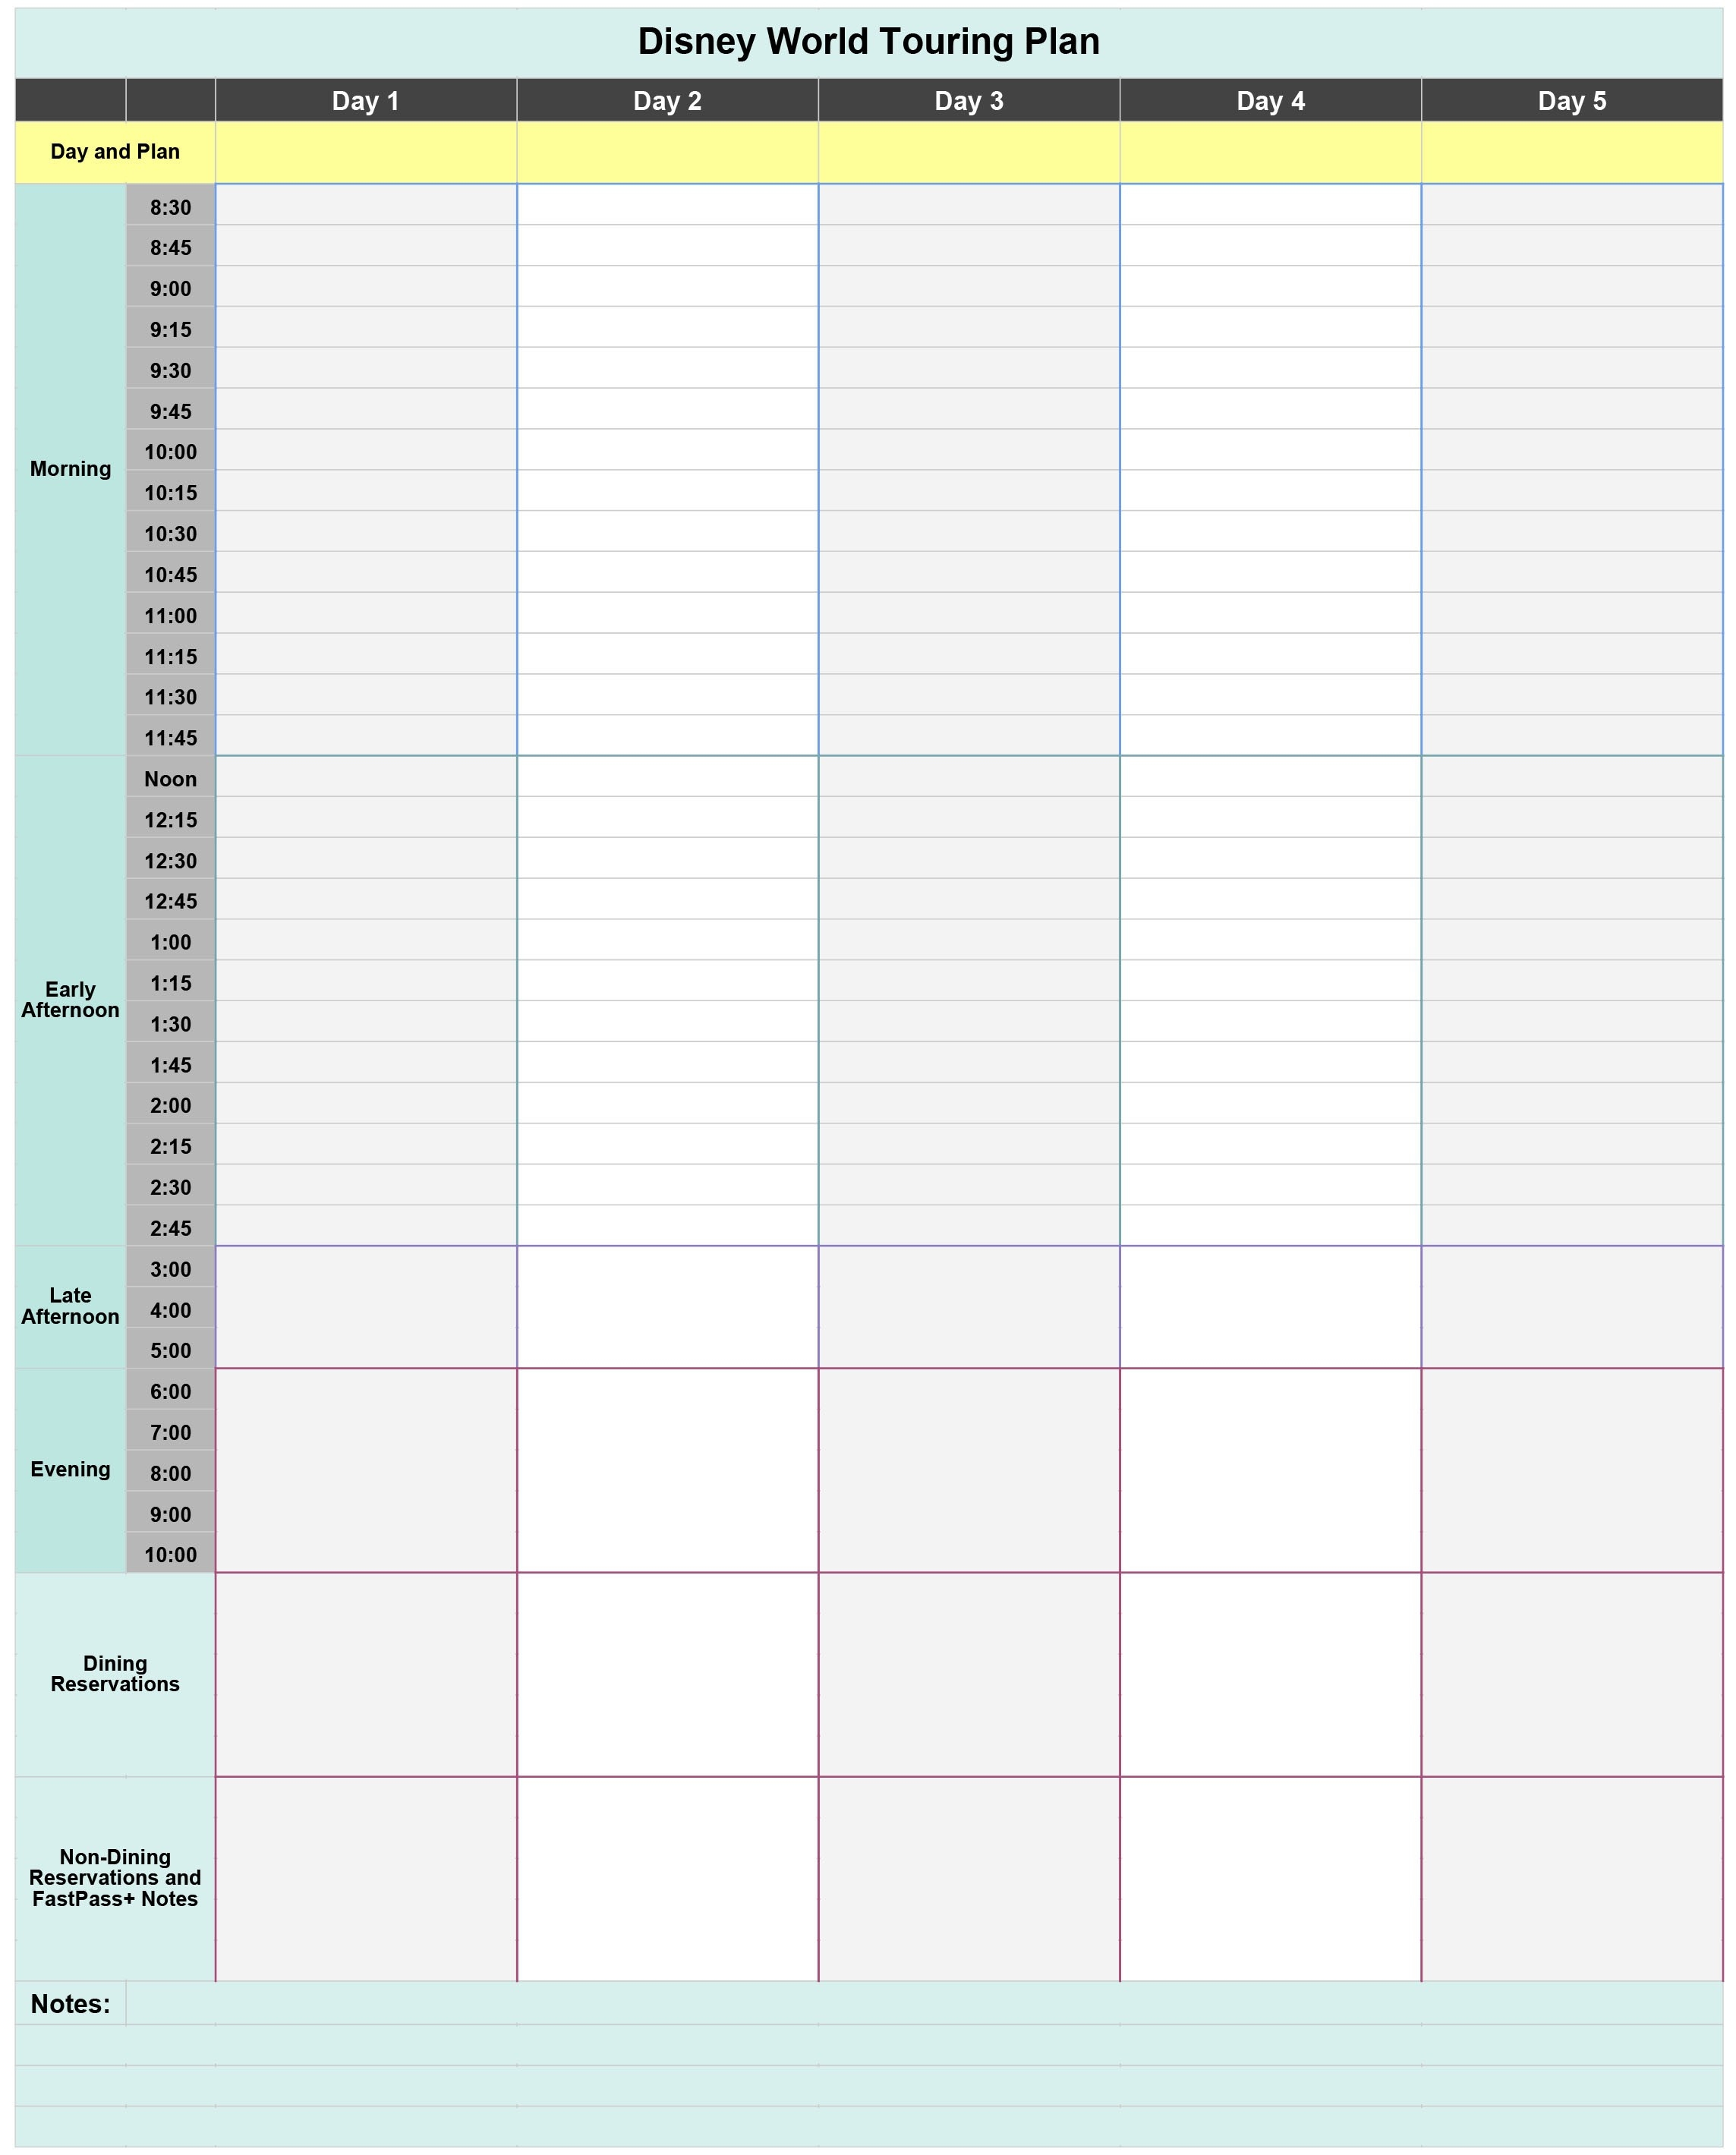 Free Disney World Touring Plan Spreadsheet - Wit & Wander-Disney World Itinerary Template Download